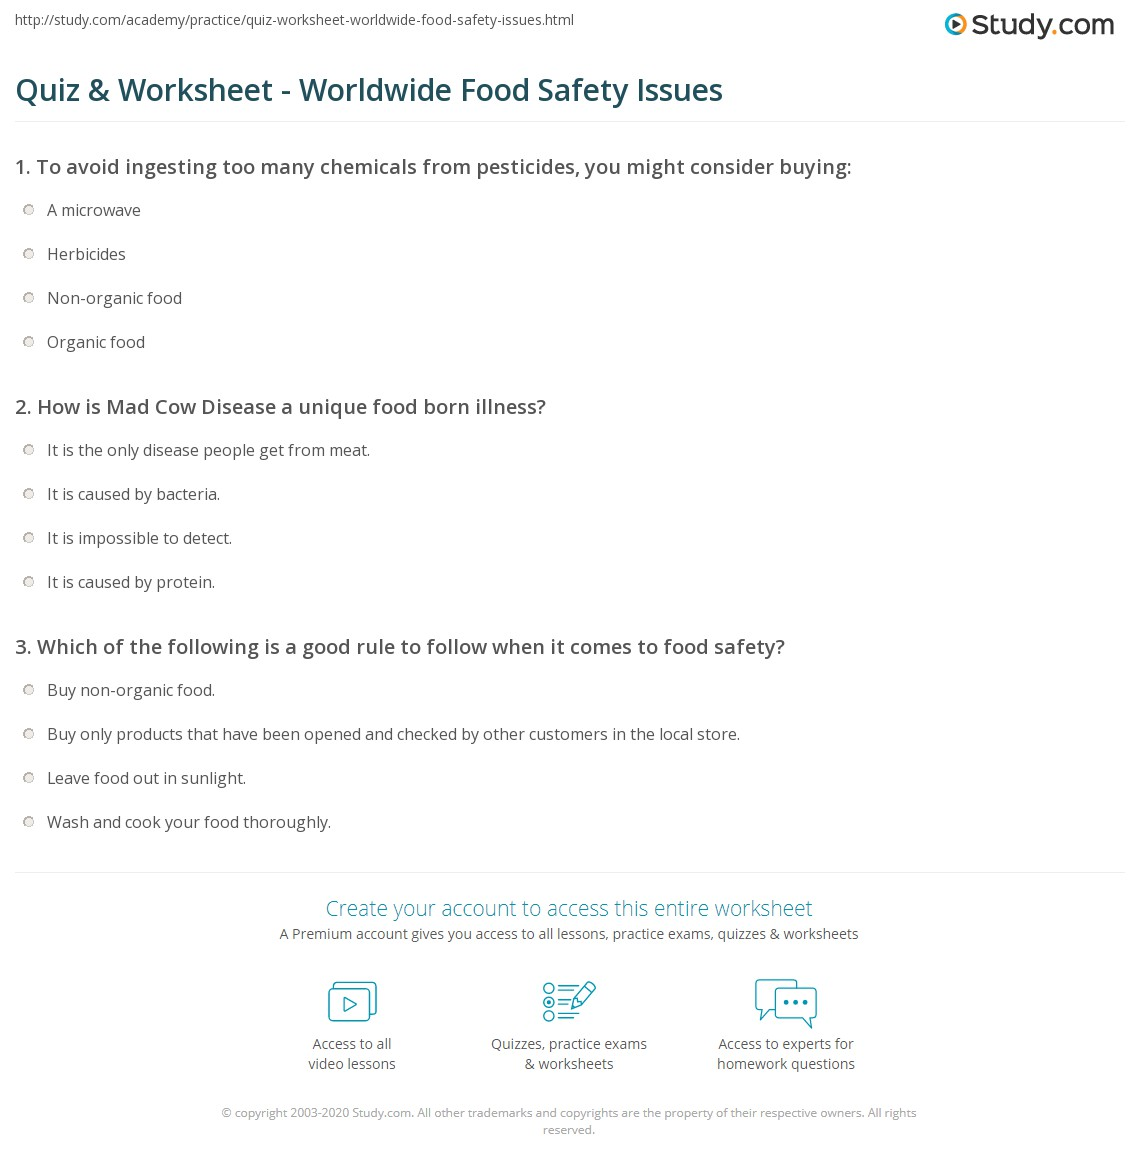 photograph about Food Safety Printable Worksheets known as Quiz Worksheet - Throughout the world Food items Protection Challenges